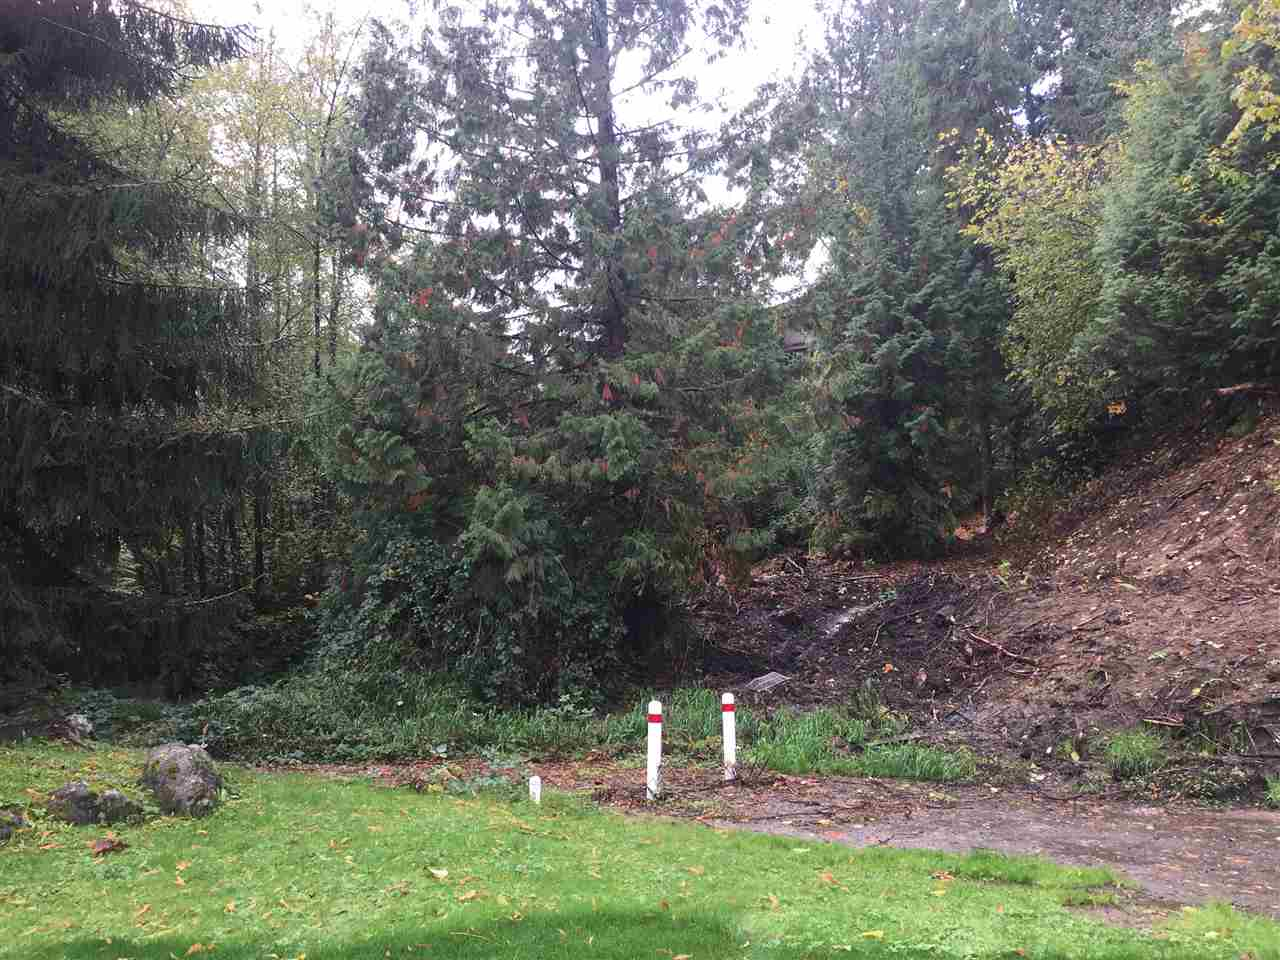 Beautiful almost 1/2 ACRE cul de sac building site for your new home with room for a shop or triple garage. Privacy, mature trees, on sewer & water near schools, shopping, transportation and walking distance to Newlands Golf course. Nestled in a country atmosphere in a neighborhood of estate homes on one acre parcels of land. Ideal for ranch style home or large two story. Great family location!